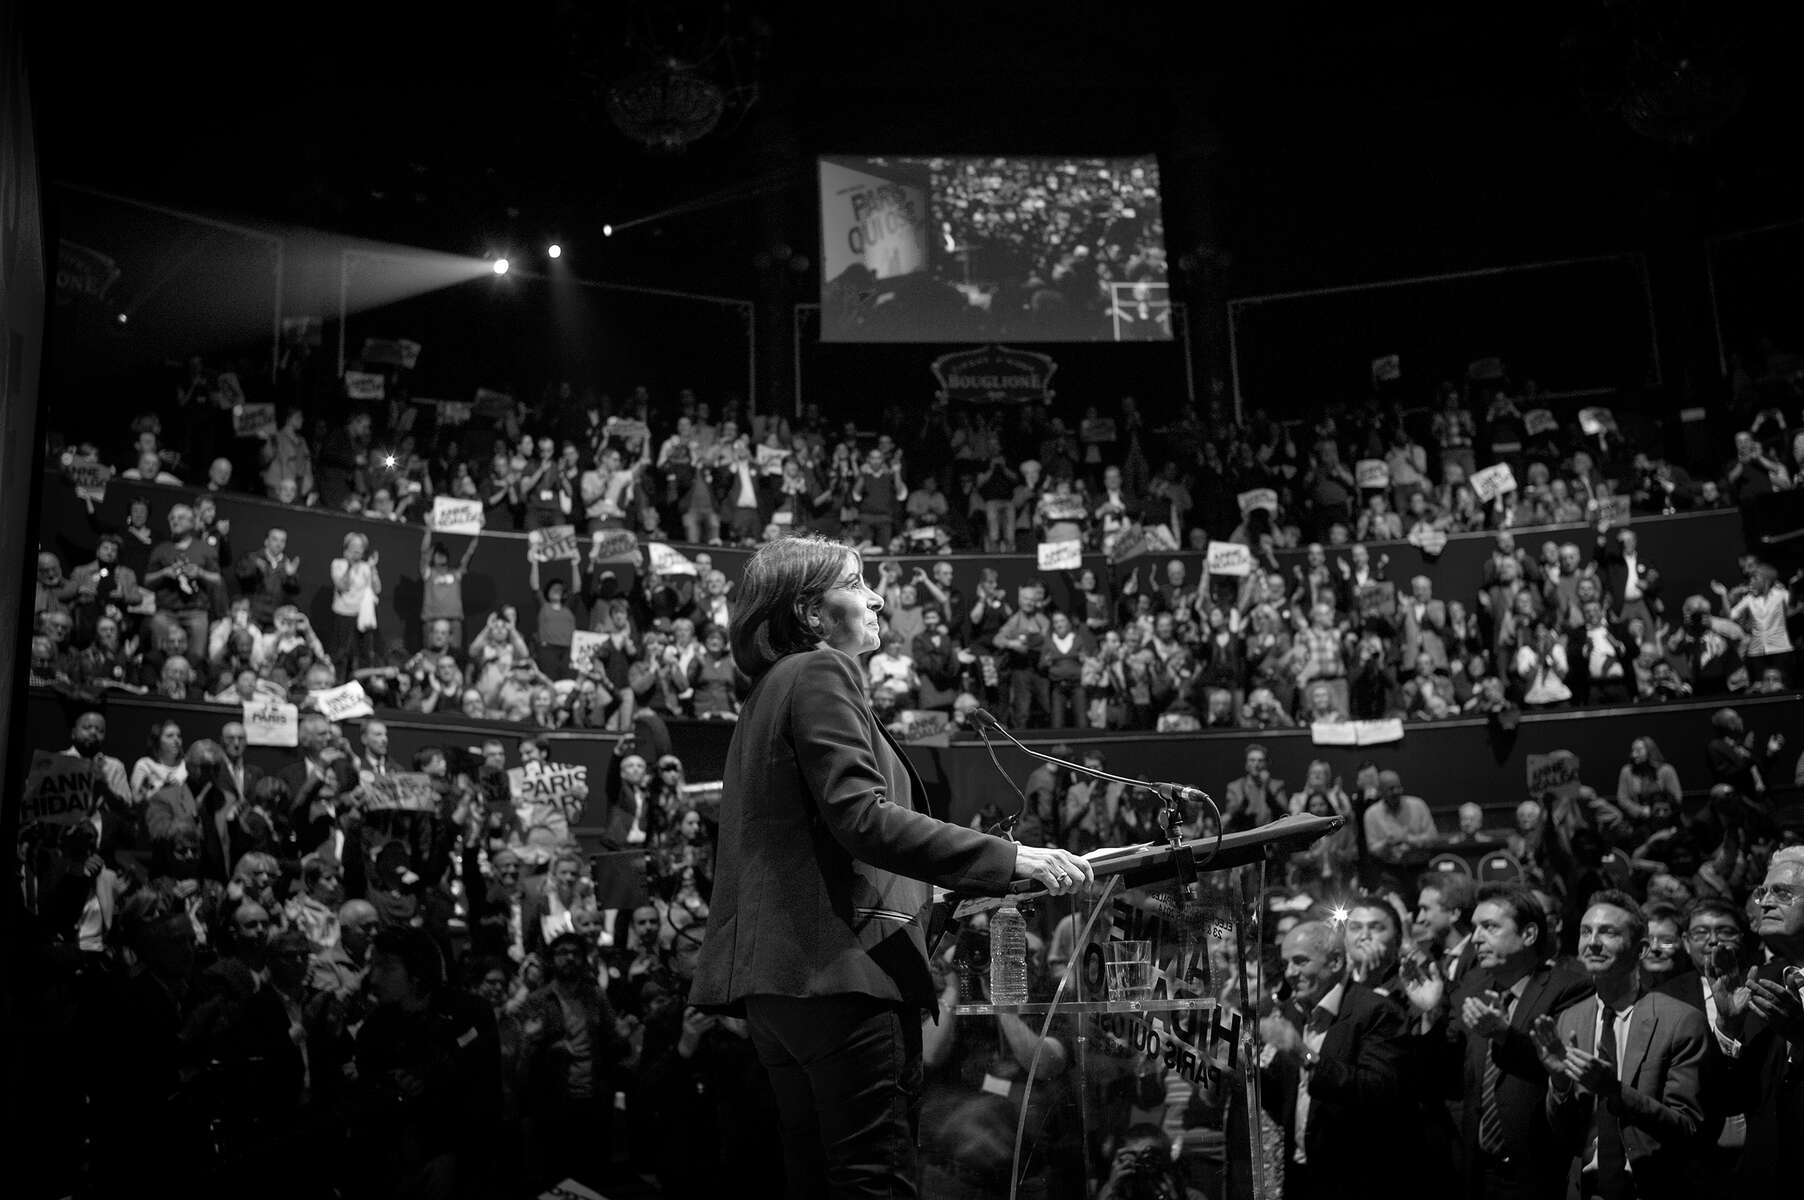 March 13, 2014.  PARIS, FRANCE- Mayoral candidate Anne Hidalgo speaks at her big rally at Paris' historic Cirque d'Hiver.  For the first time in France's history, Paris will have a woman as a mayor - either Socialist Anne Hidalgo or Center-Right Nathalie Kosciusko-Morizet.  Photo by Scout Tufankjian